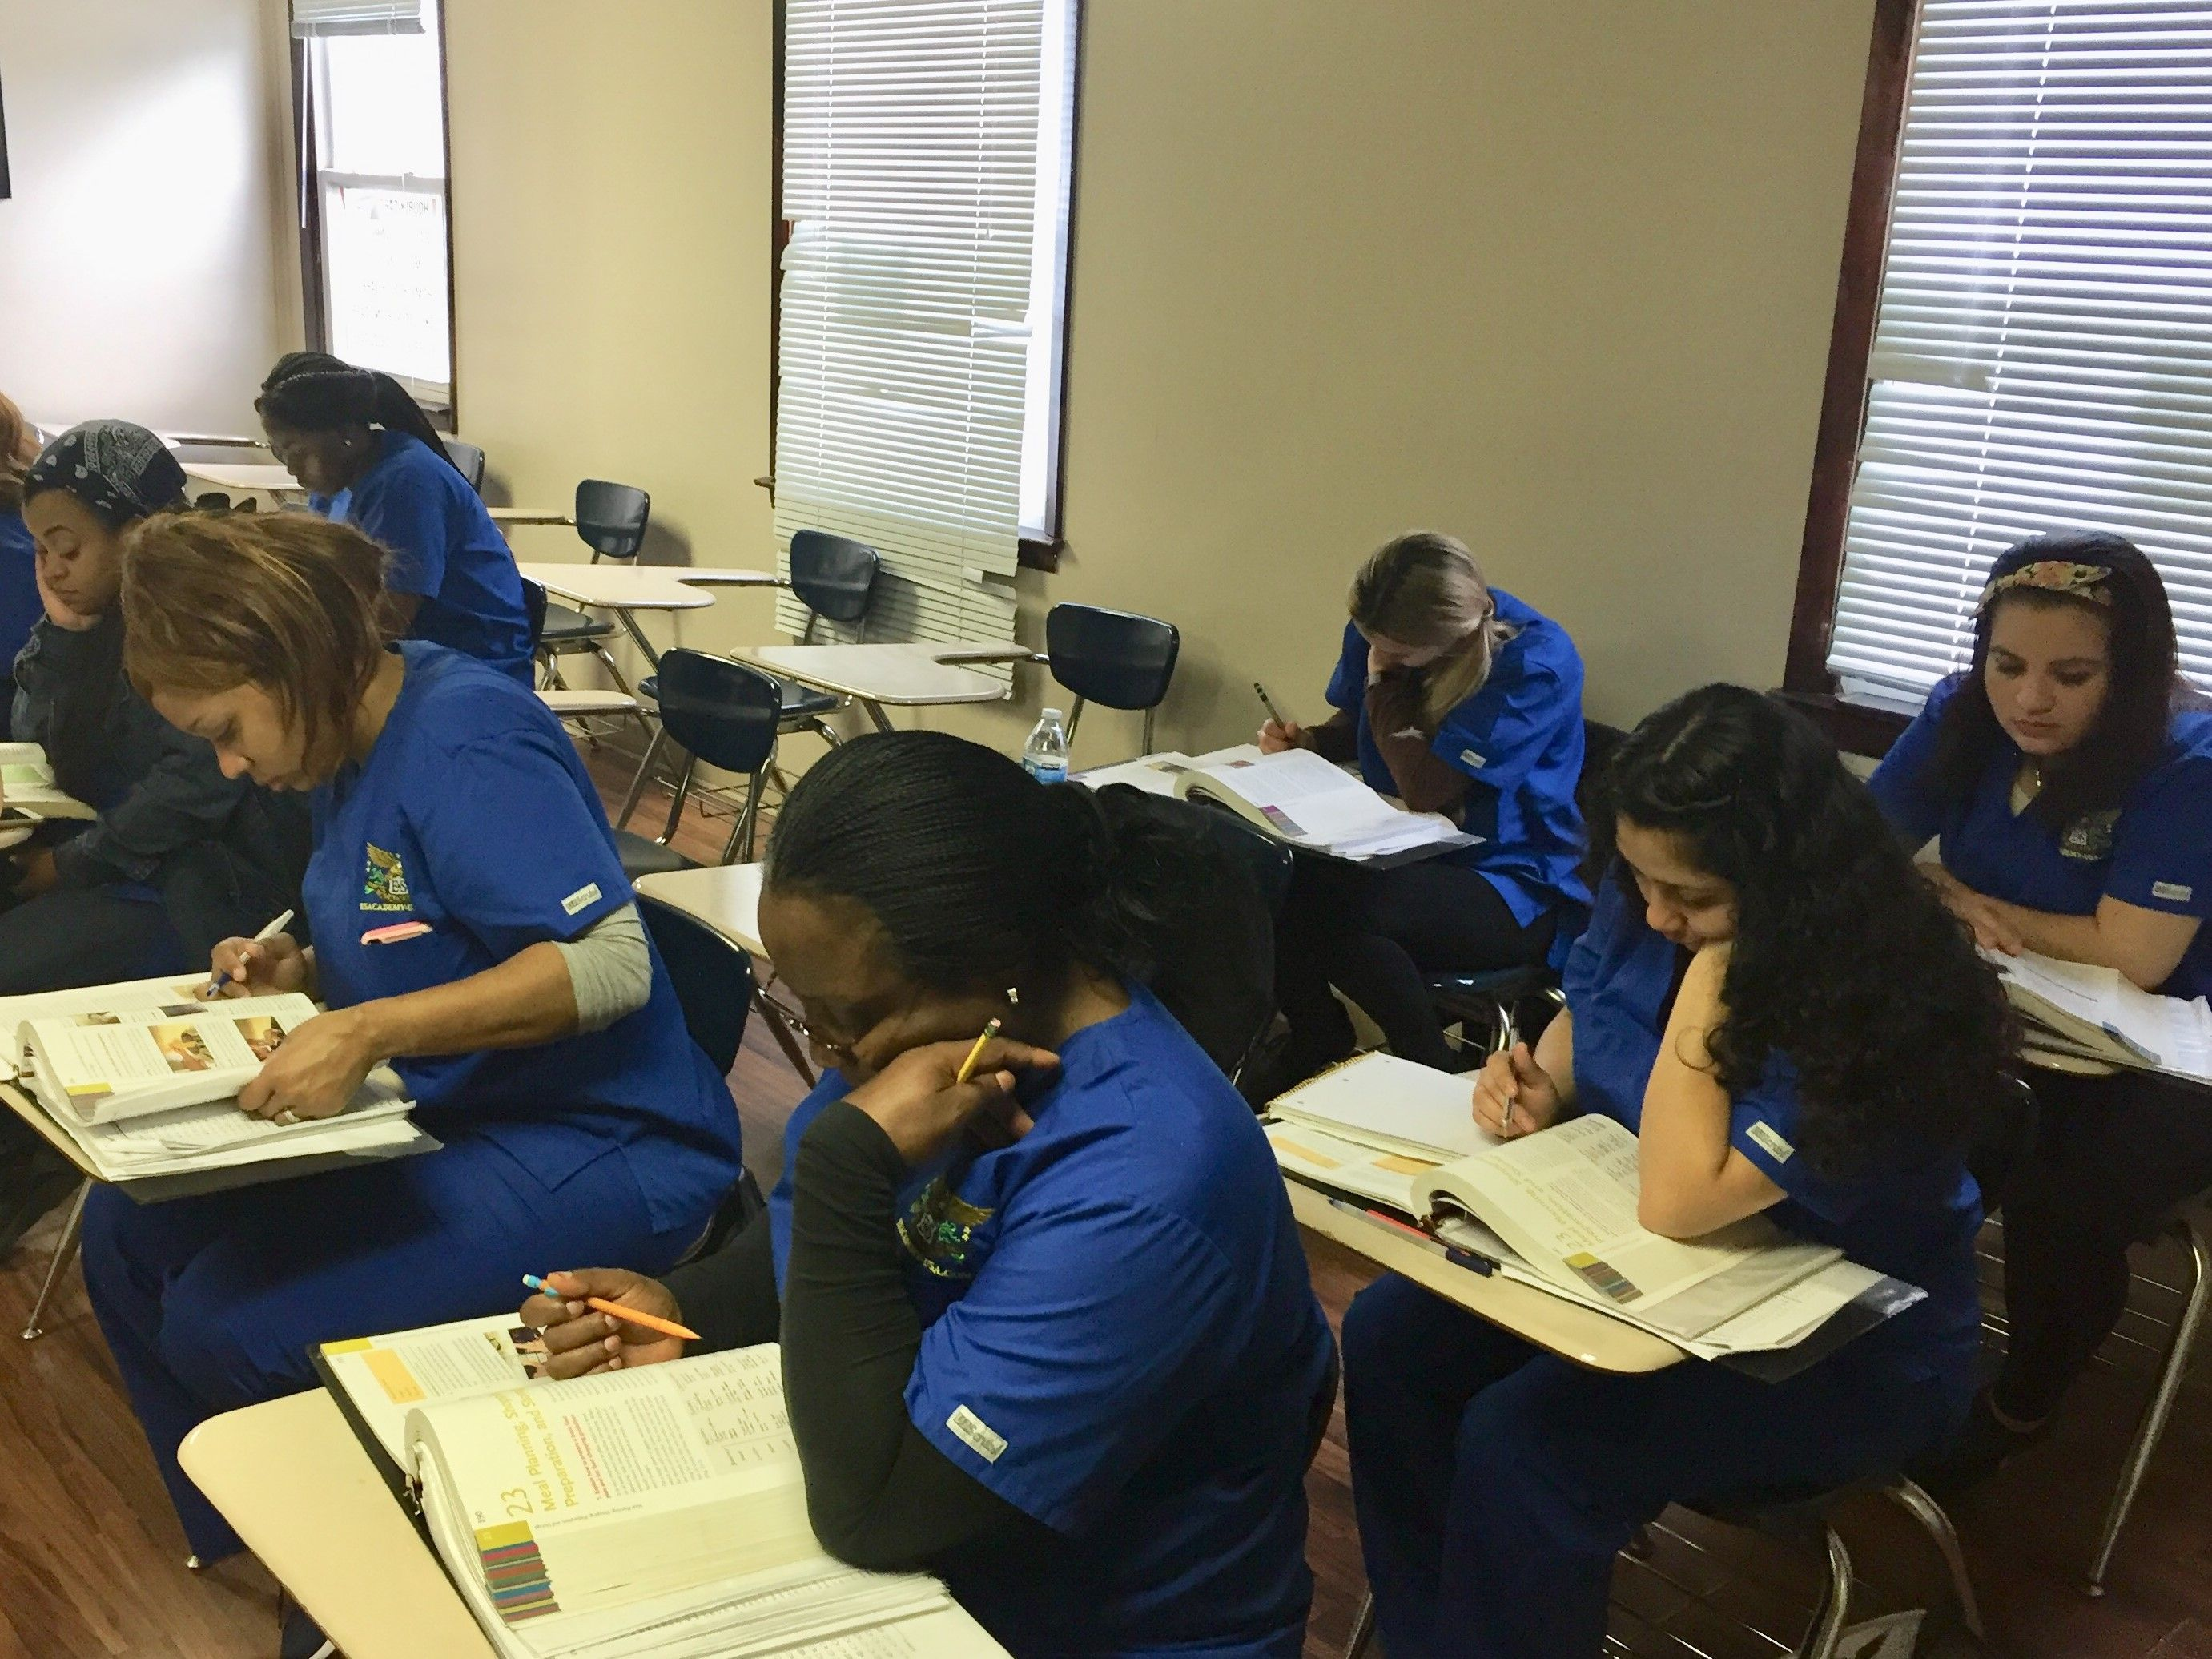 Home Health Aide Student S Acting Studious In The Classroom Hha Textbooks Hardworking Blueuniforms Train Home Health Aide Vocational School Home Health